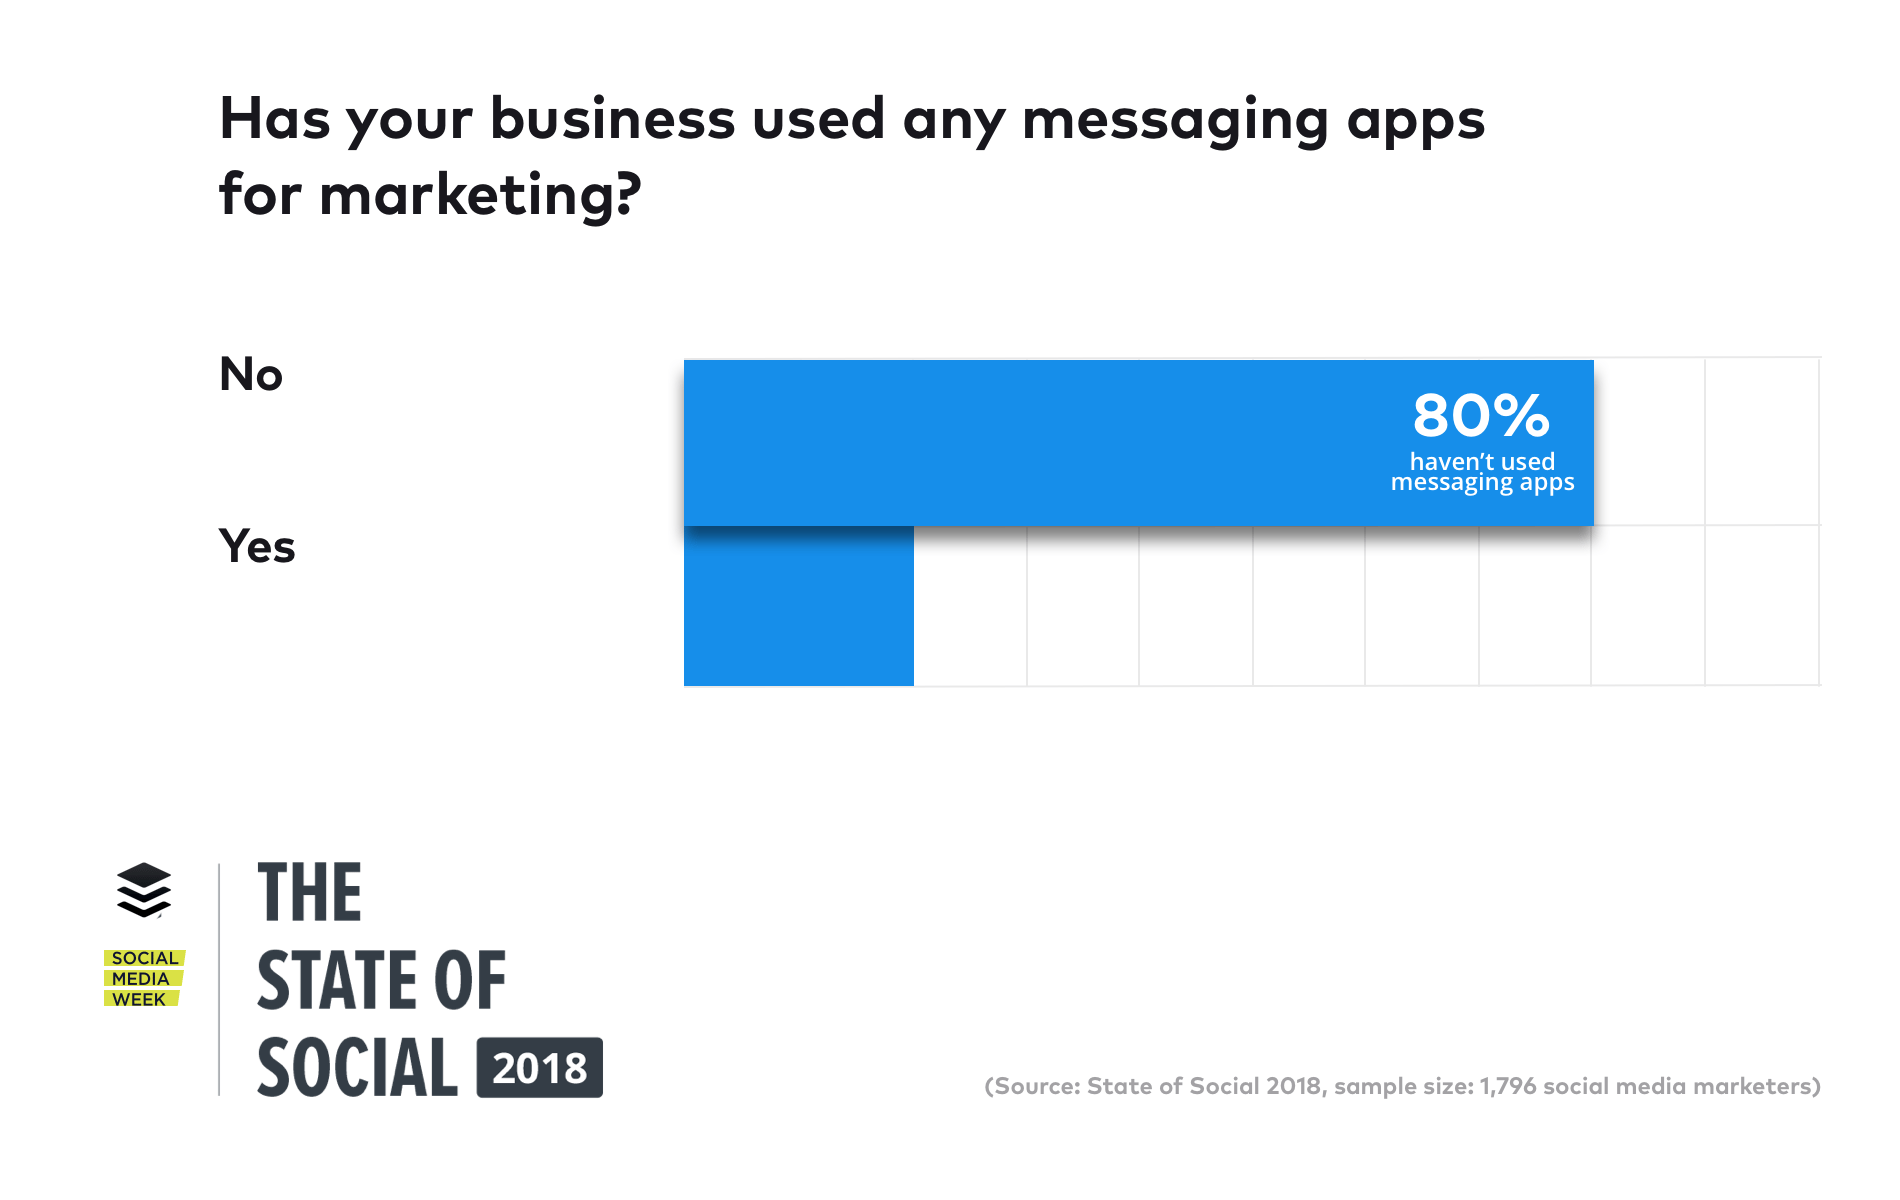 the use of messaging apps for marketing